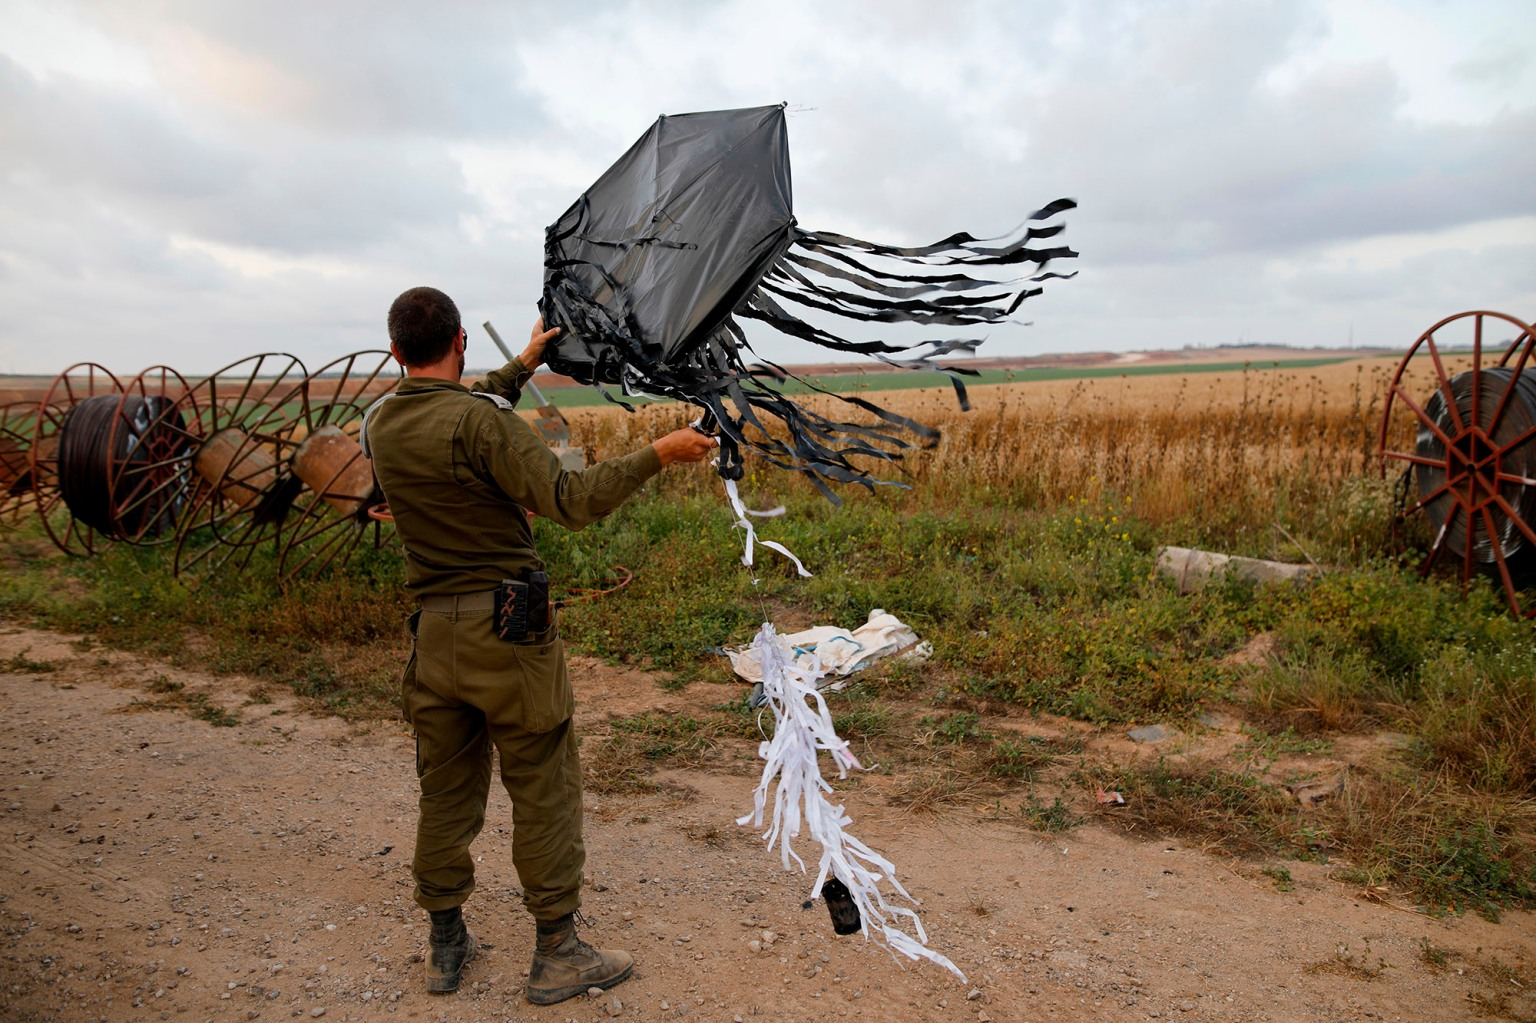 An Israeli soldier holds a kite flown over the border from Gaza in a tactic used by Palestinian protesters to start small fires in Israeli territories on the Israel-Gaza border near Kfar Aza on April 24. Tens of thousands of Palestinians have gathered at the border on consecutive Fridays to call for refugees to be allowed to return to their former homes now inside Israel. MENAHEM KAHANA/AFP/Getty Images